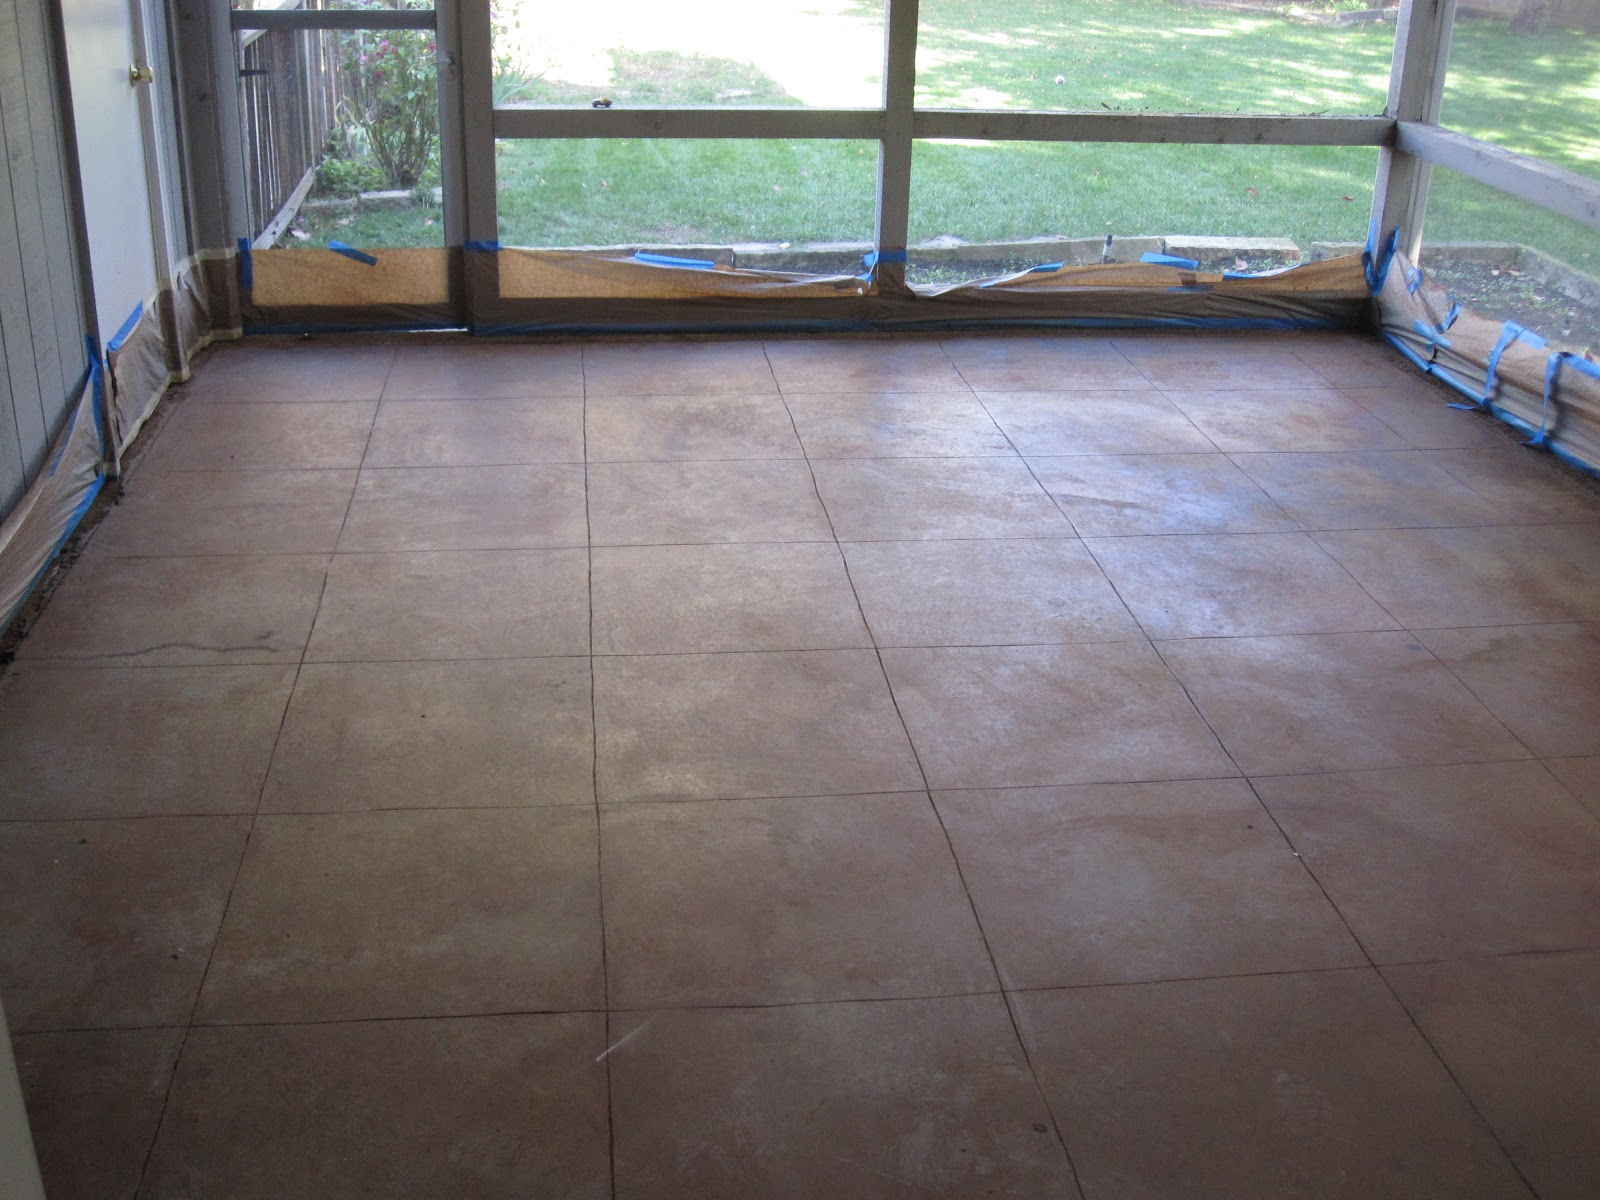 The Floor No Longer Looks Like A Boring Grey Concrete Slab On Grade